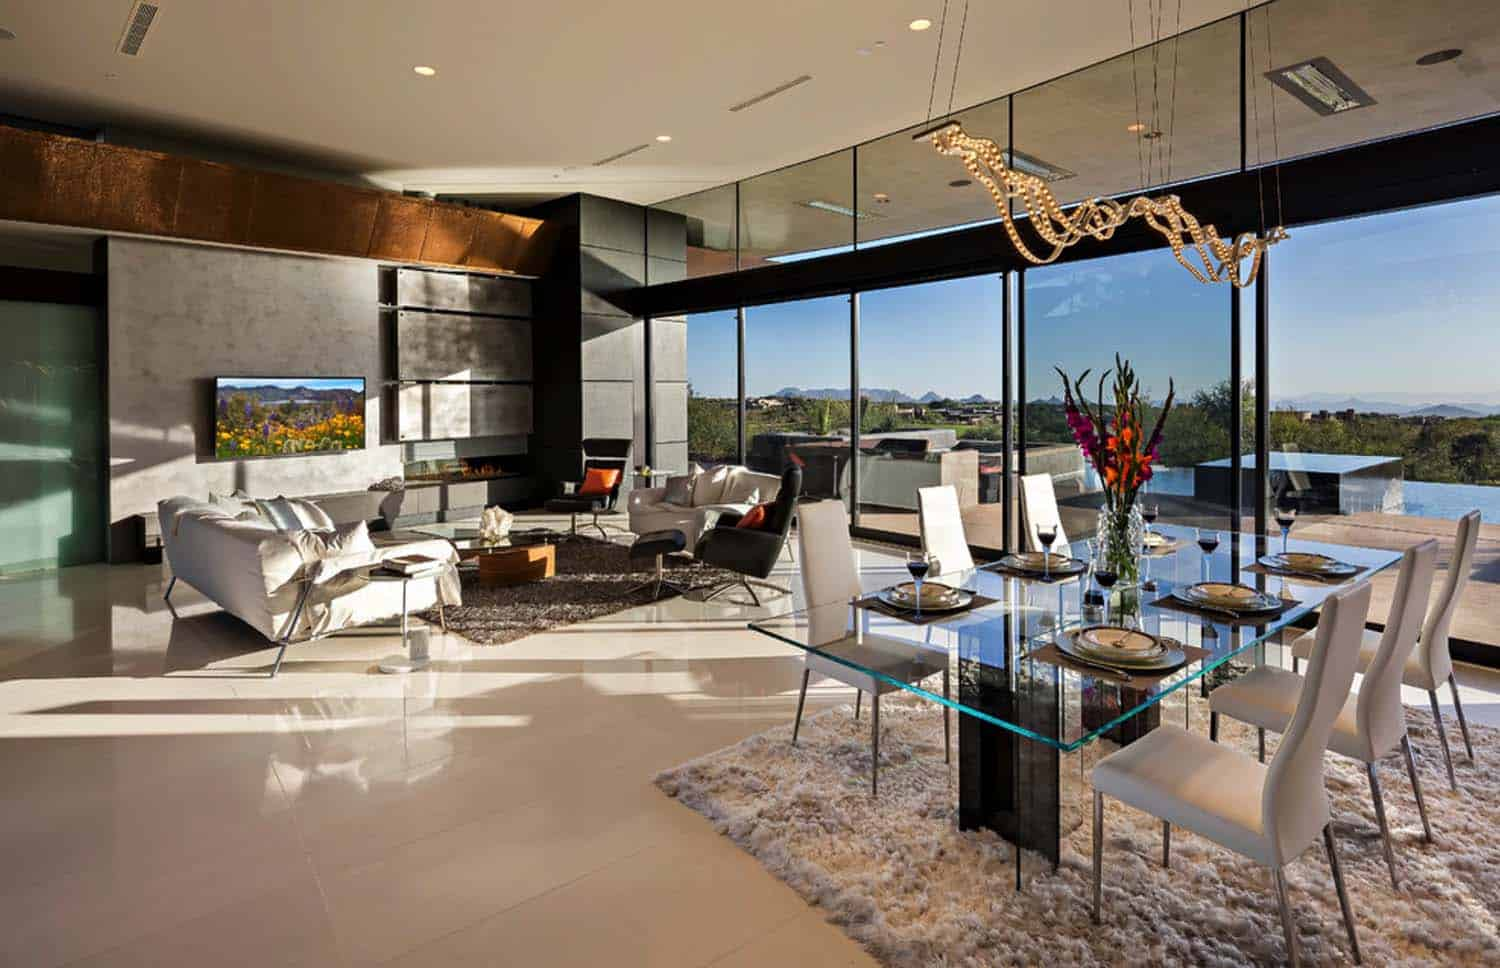 Dream home in the arizona desert merges indoor outdoor living for Cost to build a house in arizona